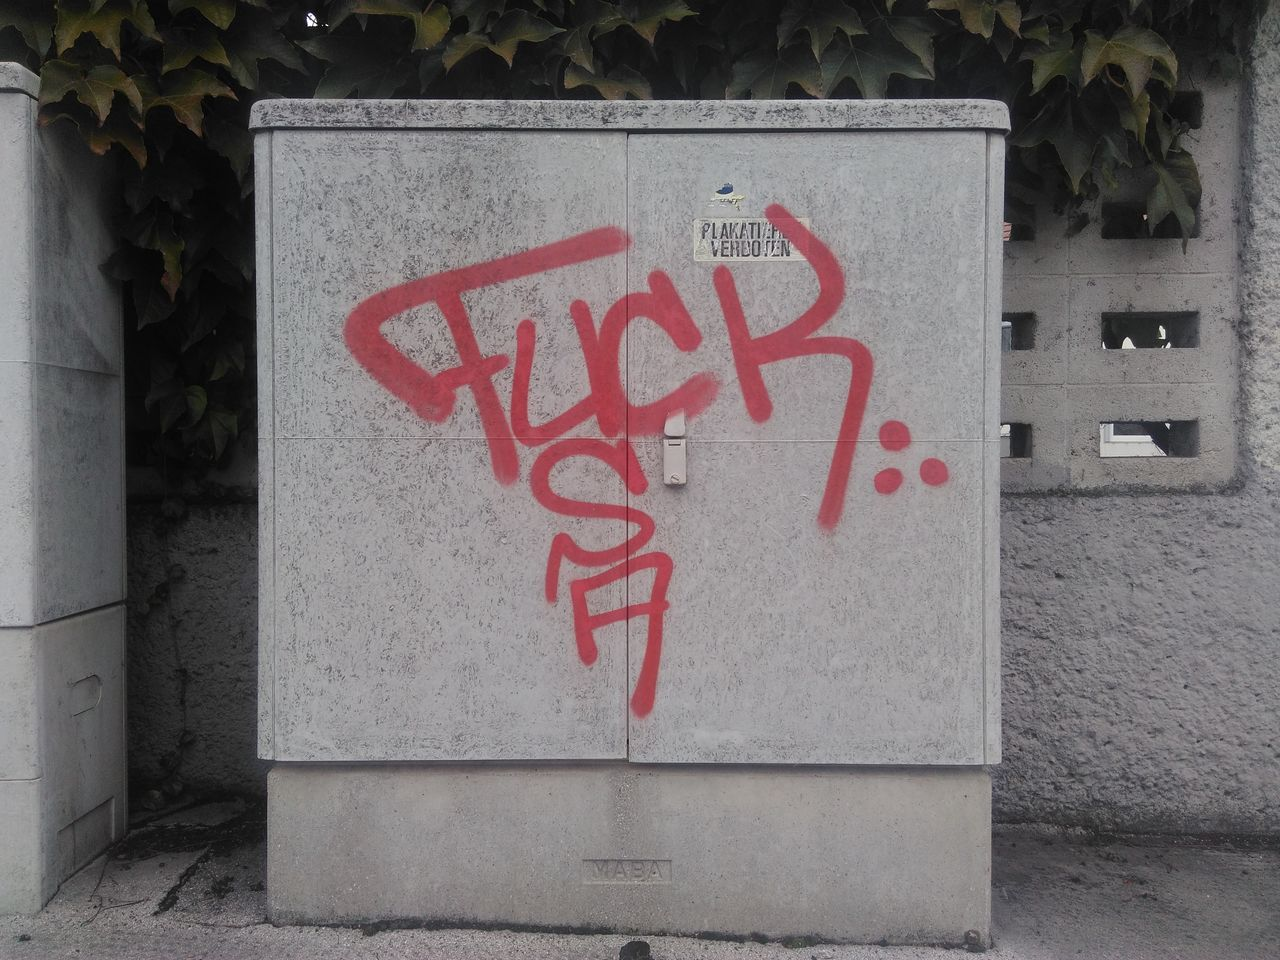 Graffiti USA Outdoors No People Communication Vienna Liesing Wien Austria Plakatieren Verboten